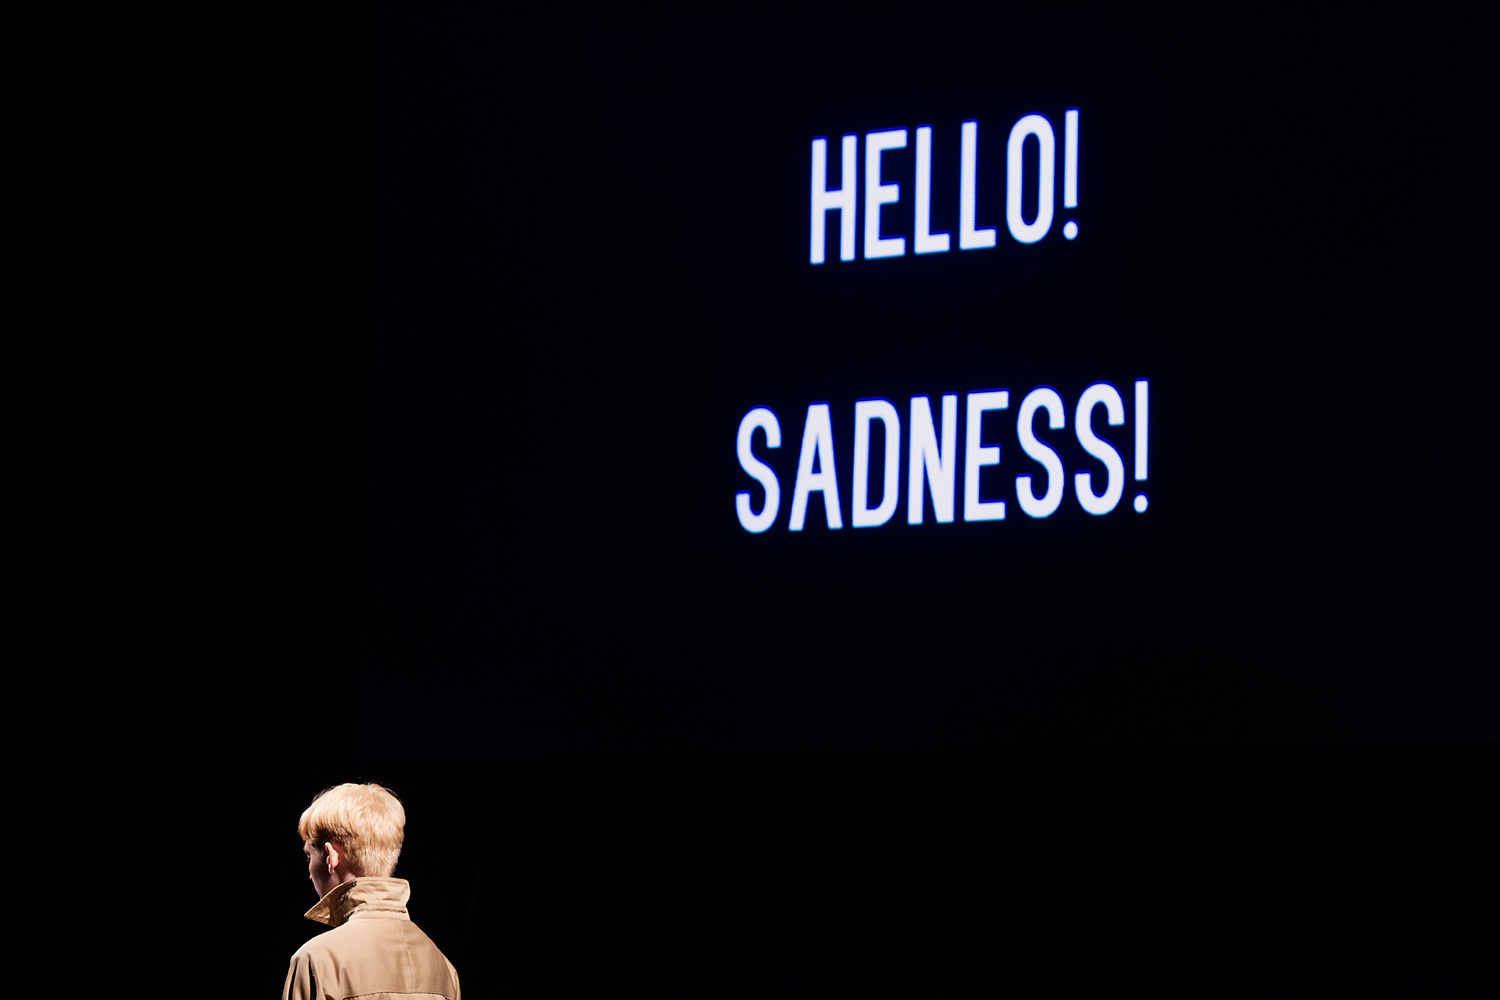 Mary Tuomanen in the premiere of her one woman show Hello! Sadness! at the SEI Innovation Studio at the Kimmel Center for the Performing Arts.